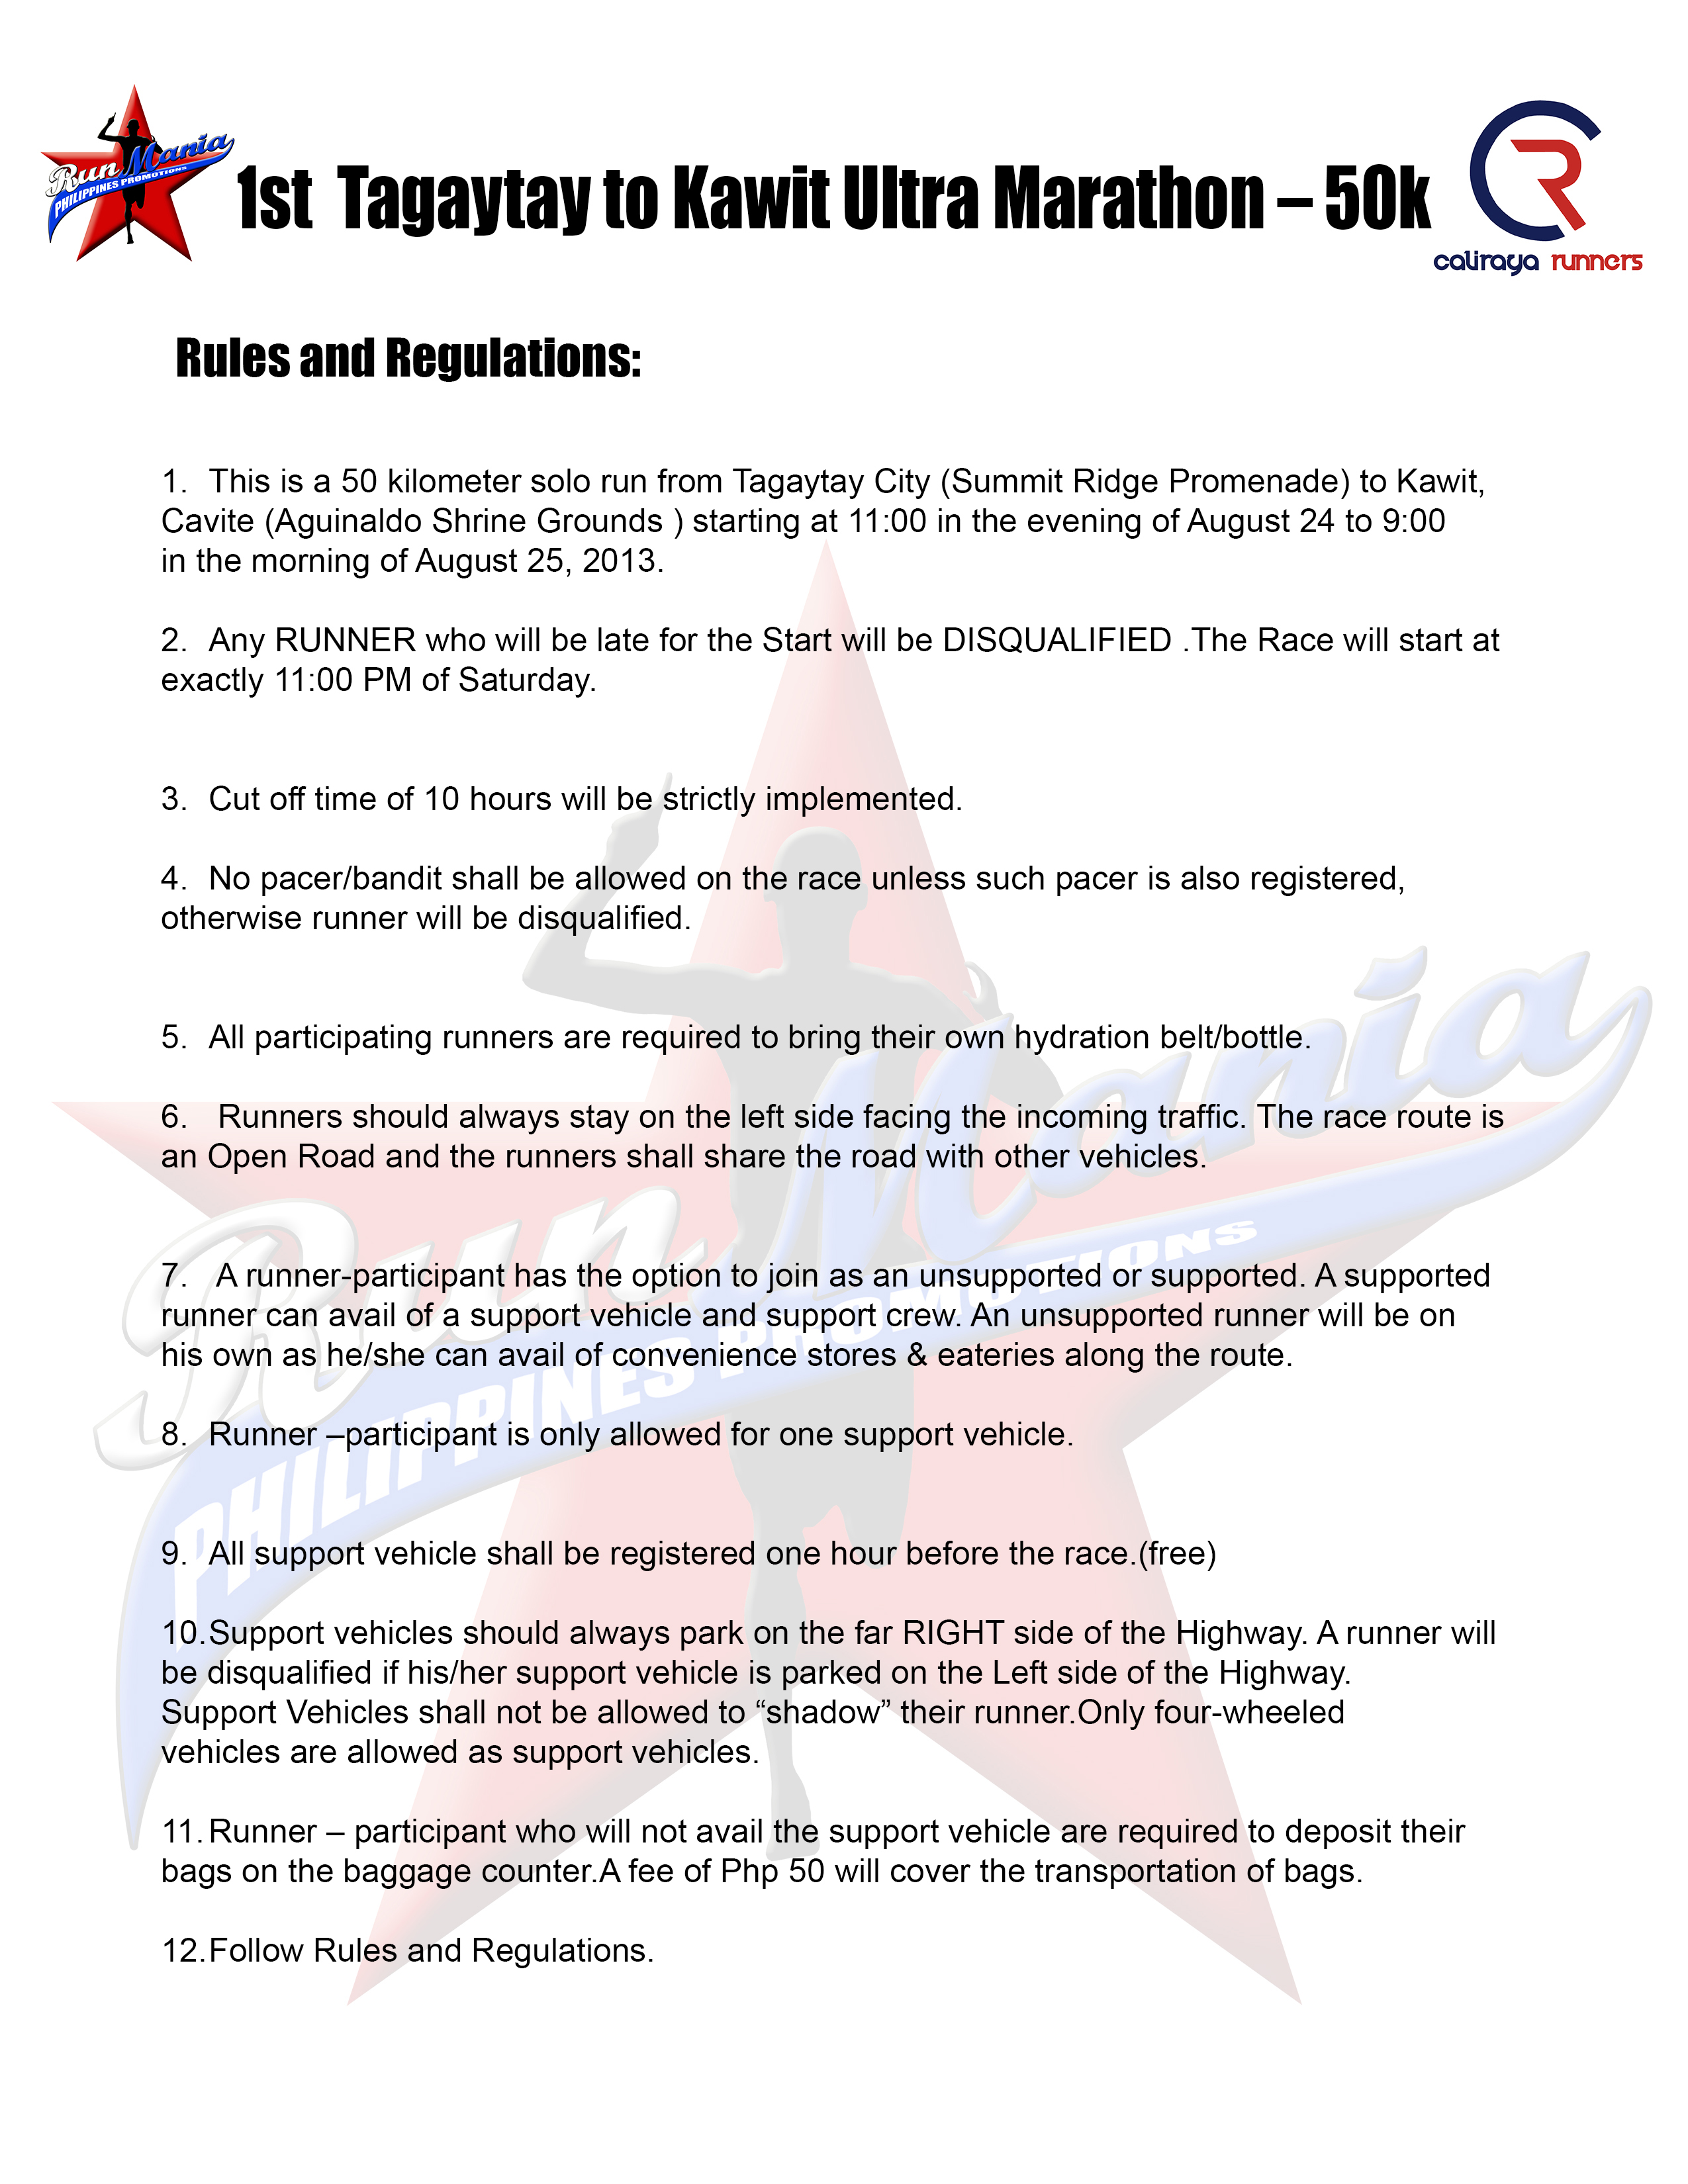 tagaytay-to-kawit-50k-ultramarathon-2013-rules-and-regulations